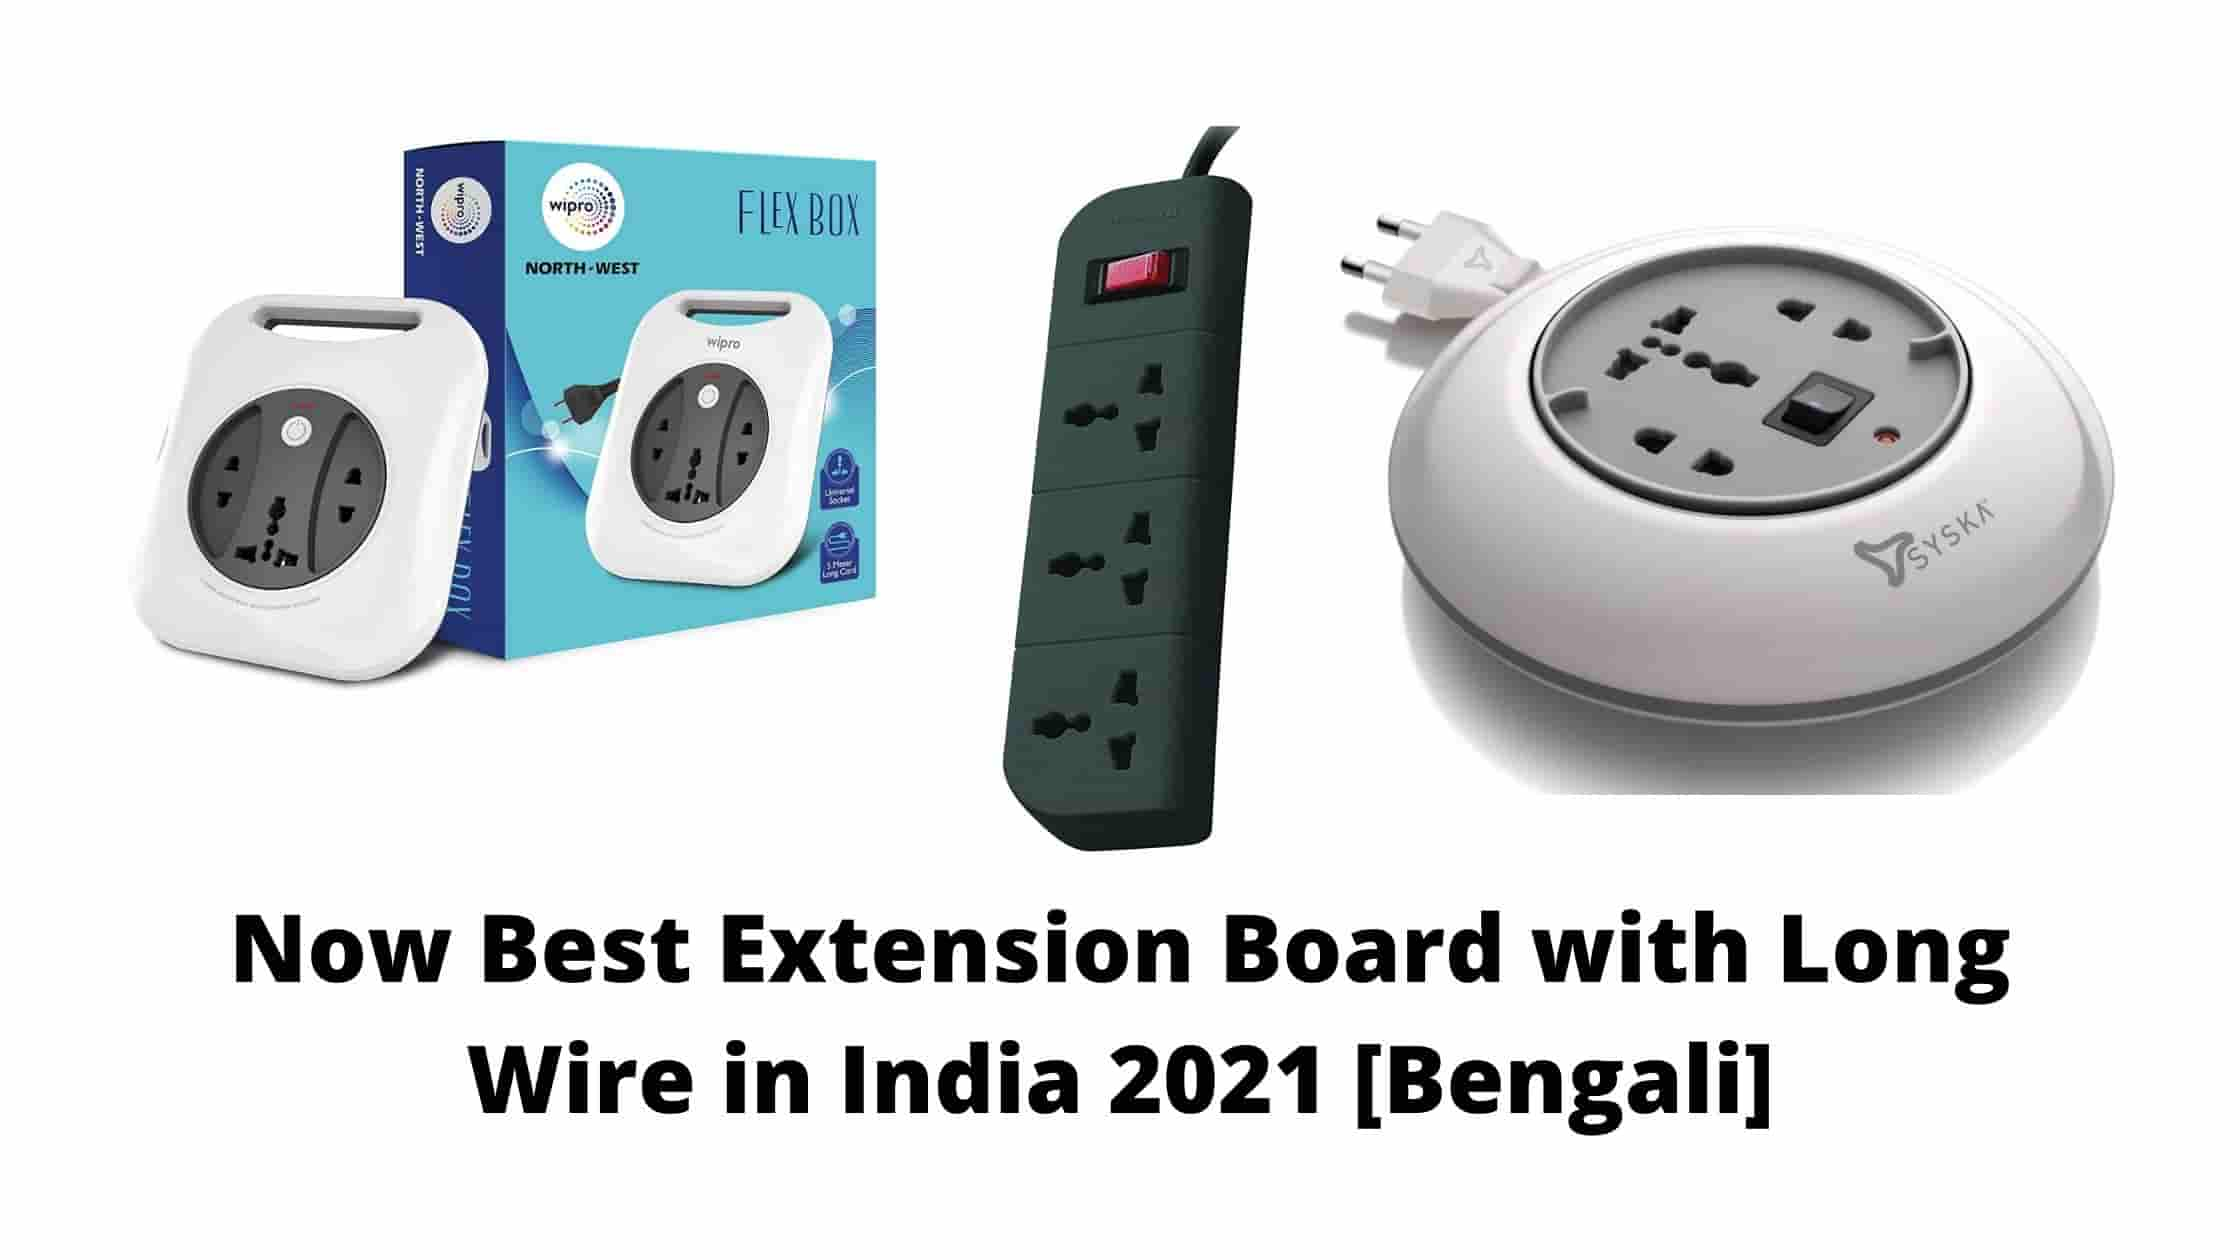 Now Best Extension Board with Long Wire in India 2021 [Bengali]